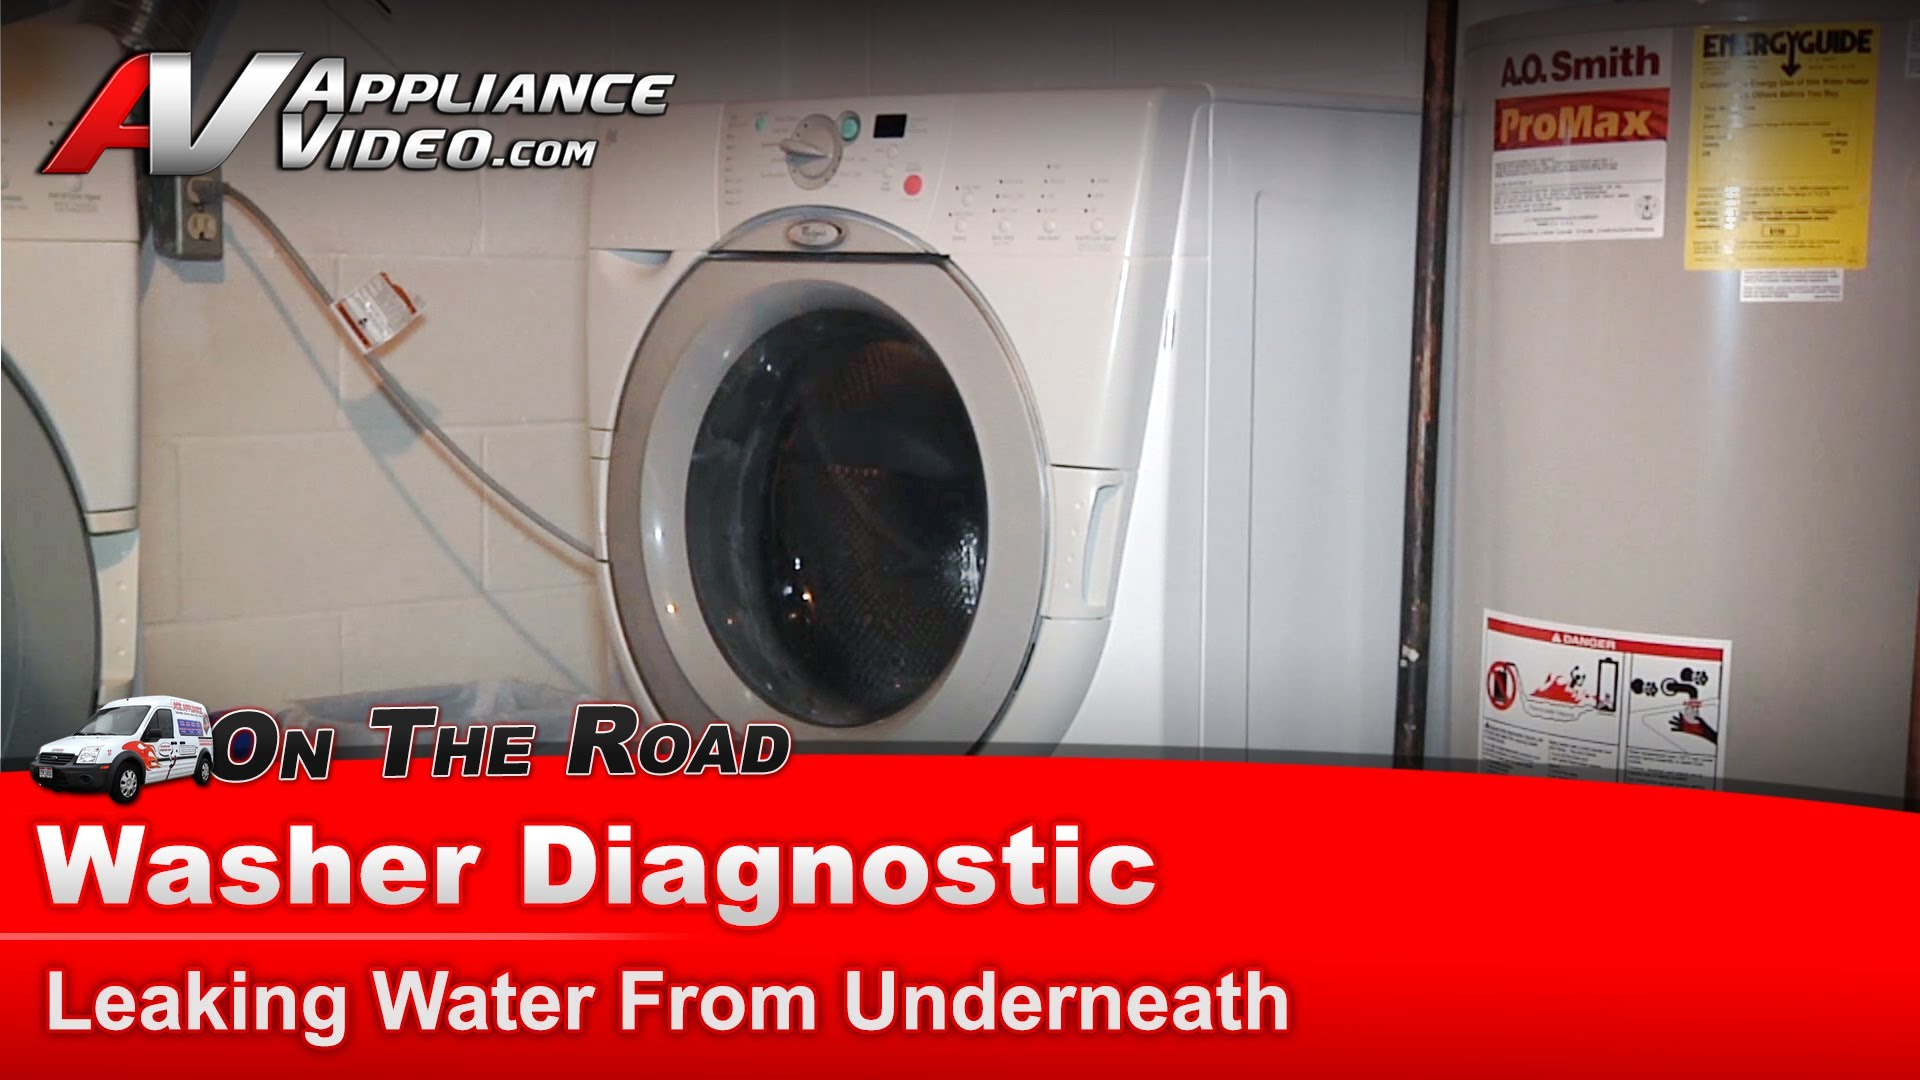 Washing Machine Leaking >> Whirlpool GHW9150PW1 Washer Diagnostic – Leaking water from underneath – Bellow | Appliance Video